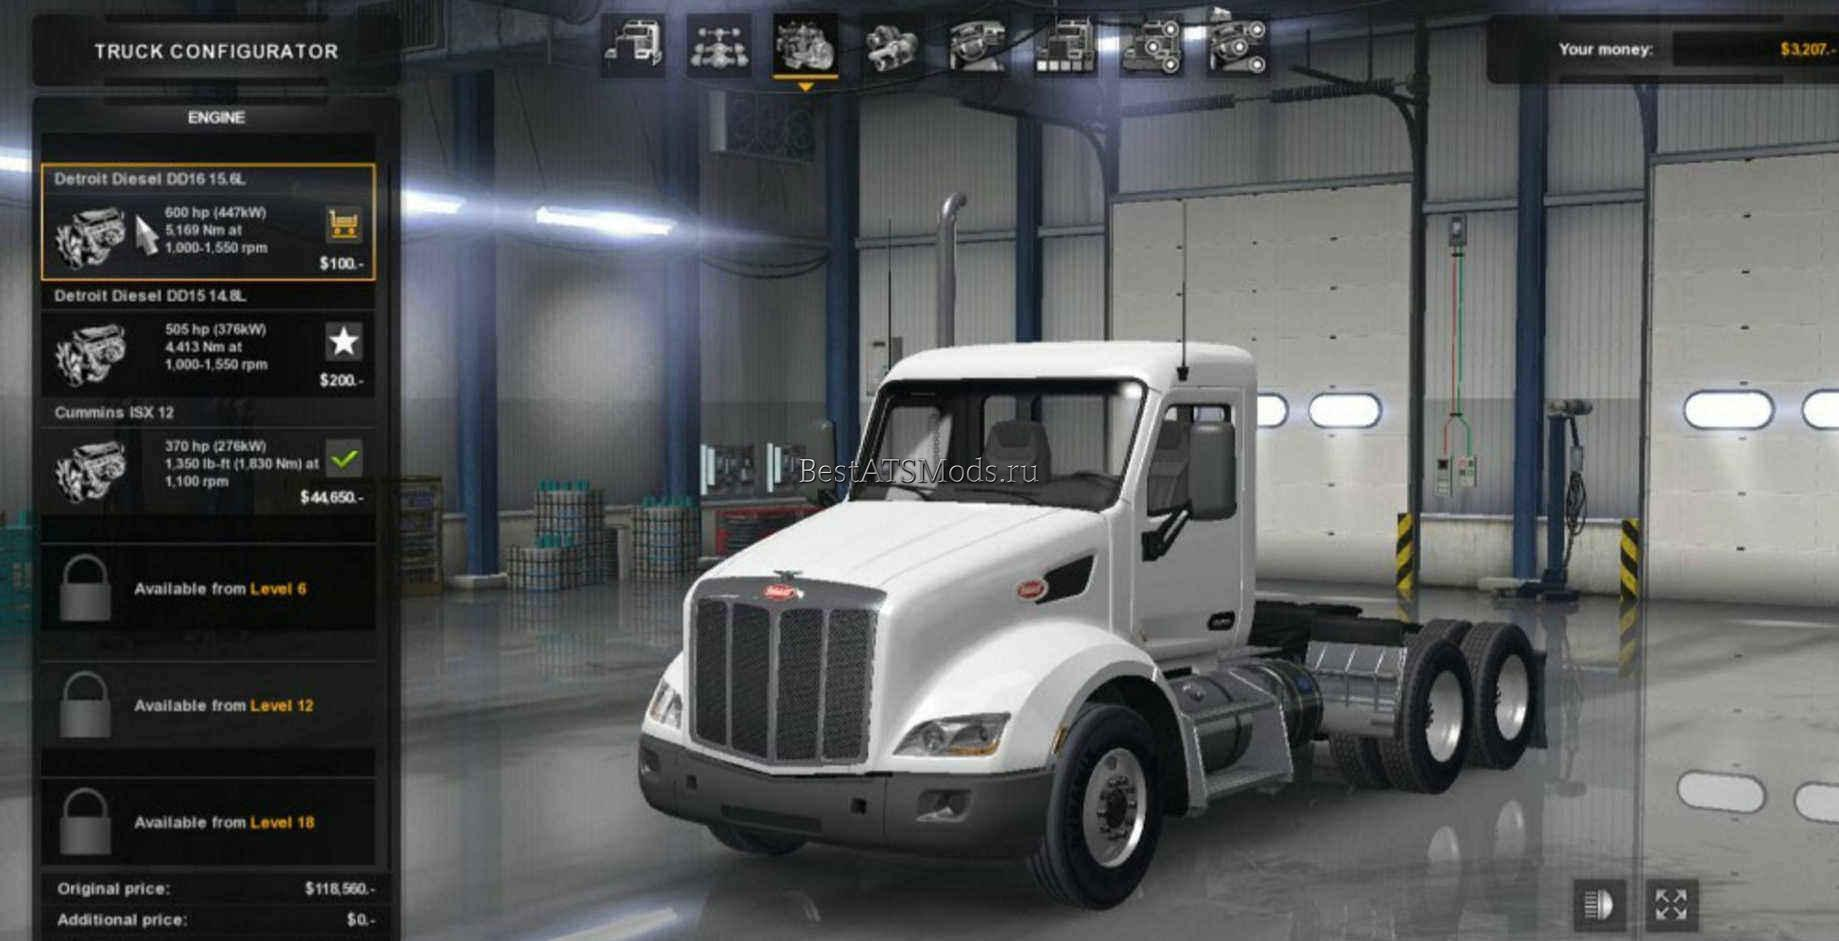 rsz_Мод_двигатель_detroit_diesel_high_torque_engines_-_allison_4500_mod_american_truck_simulator